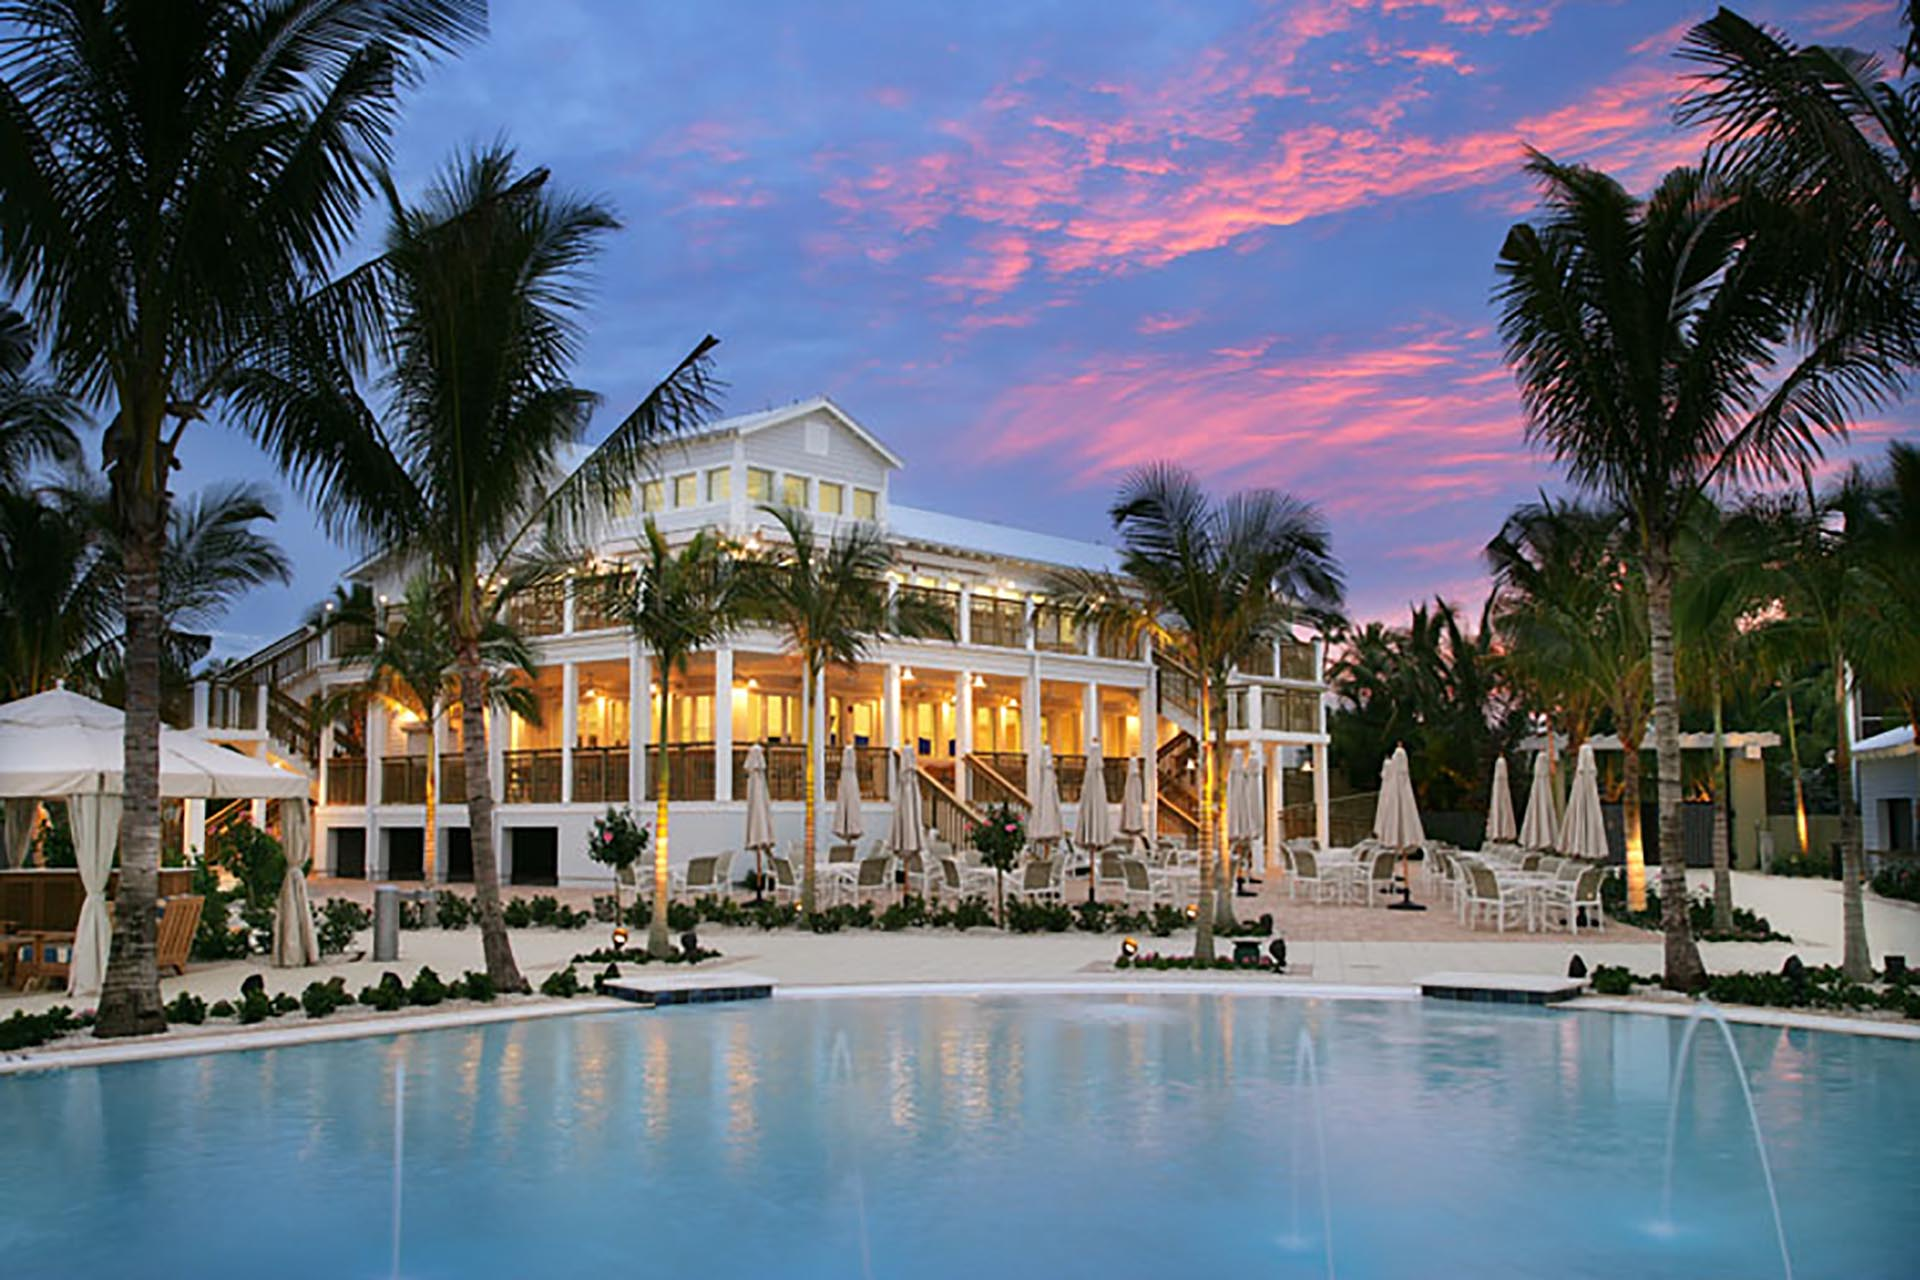 Sanibel Island Hotels: South Seas Island Resort: Cabanas And Pool At The Pointe